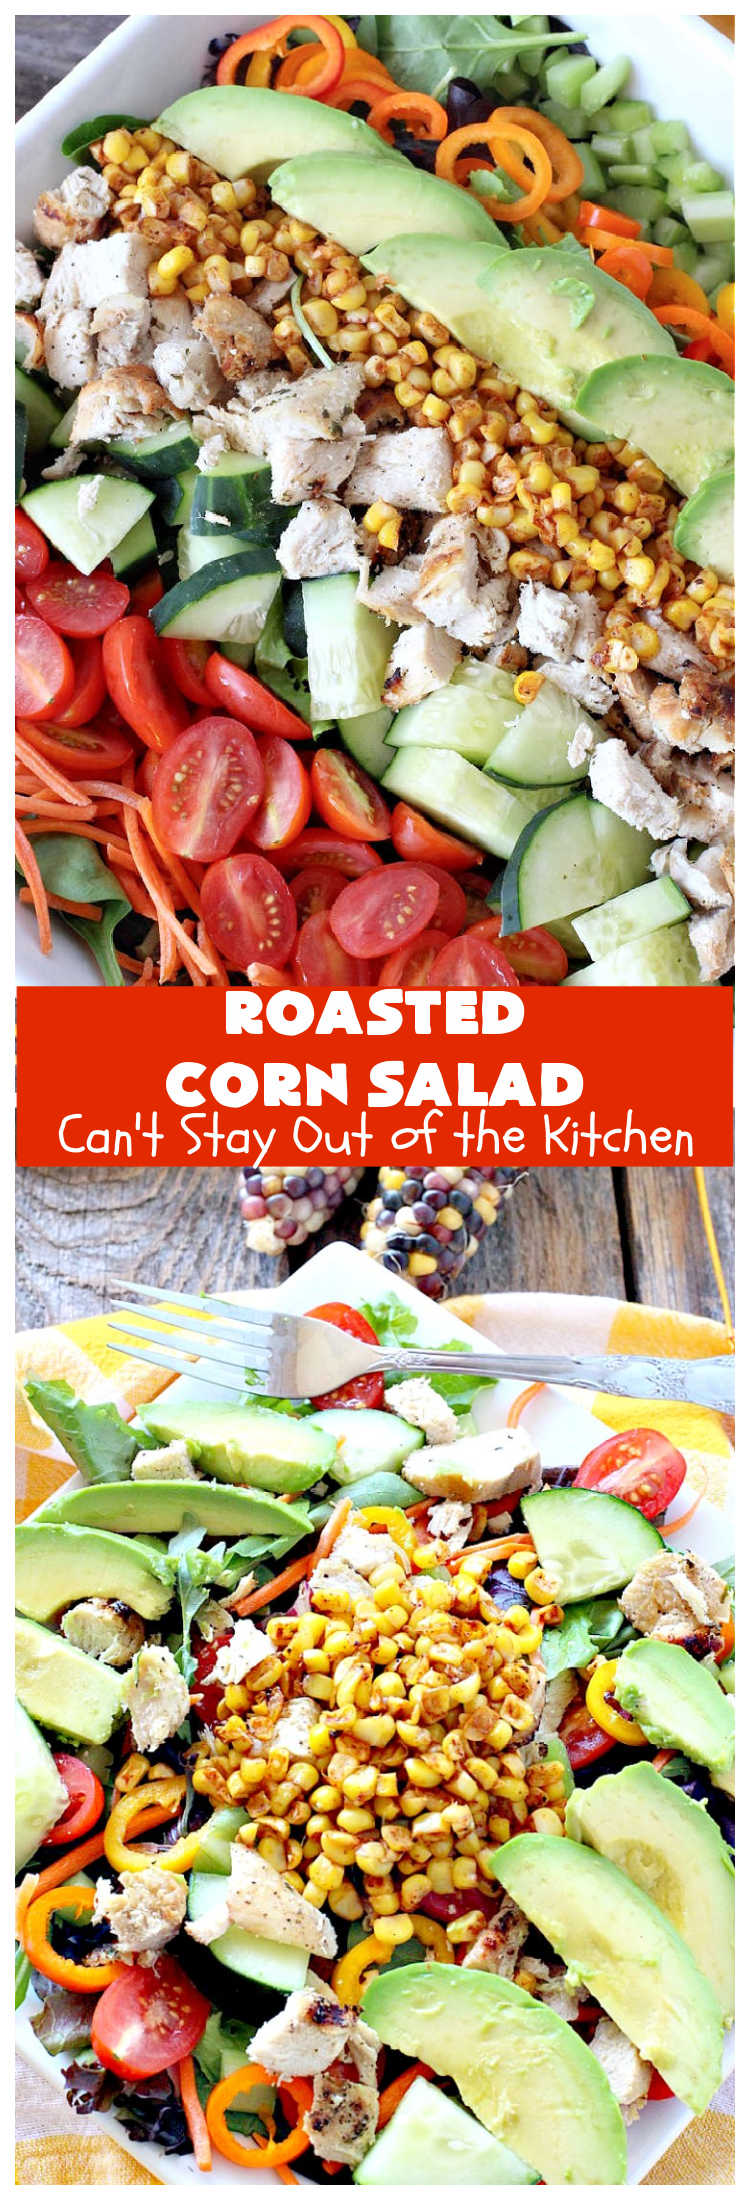 Roasted Corn Salad | Can't Stay Out of the Kitchen | this #healthy, clean-eating #salad is full of flavor & crunchy goodness. Perfect main dish salad using #RoastedCorn, grilled #chicken & #avocados.  #corn #tomatoes #cucumber #GlutenFree #CompanySalad #RoastedCornSalad